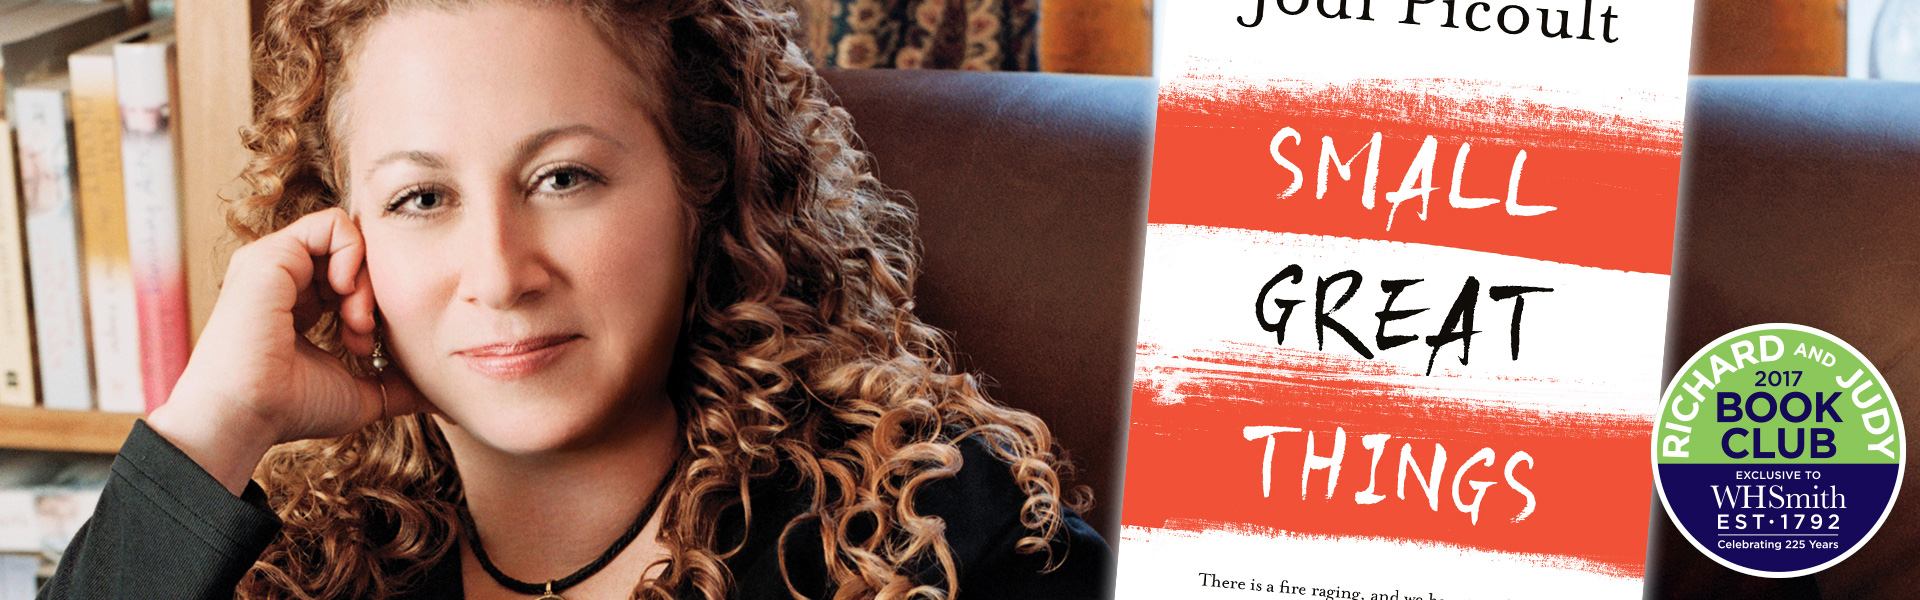 Jodi Picoult: Be True to Your Moral Compass